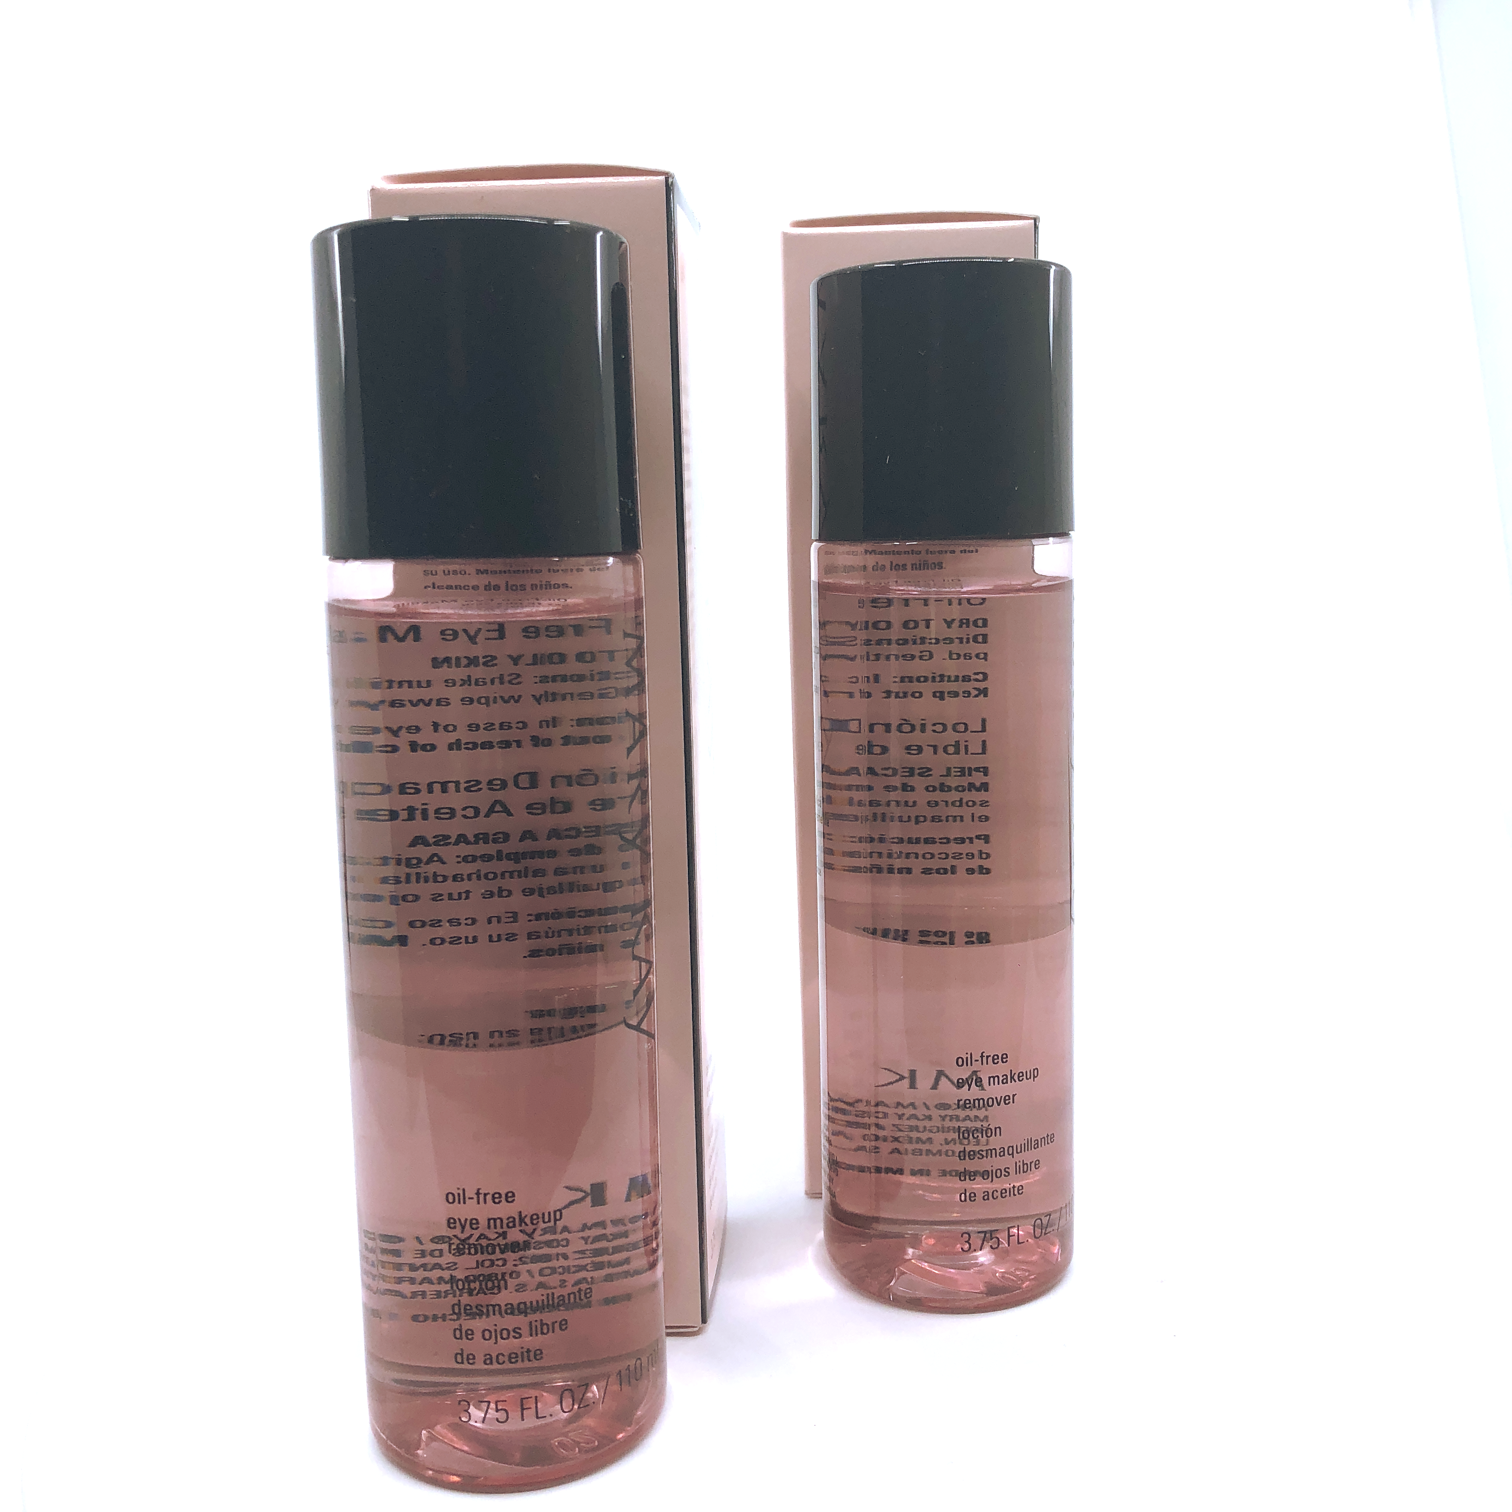 Mary Kay Oil-Free Eye Makeup Remover- 3.75 fl. oz. (2 PACK) FREE SHIPPING 7